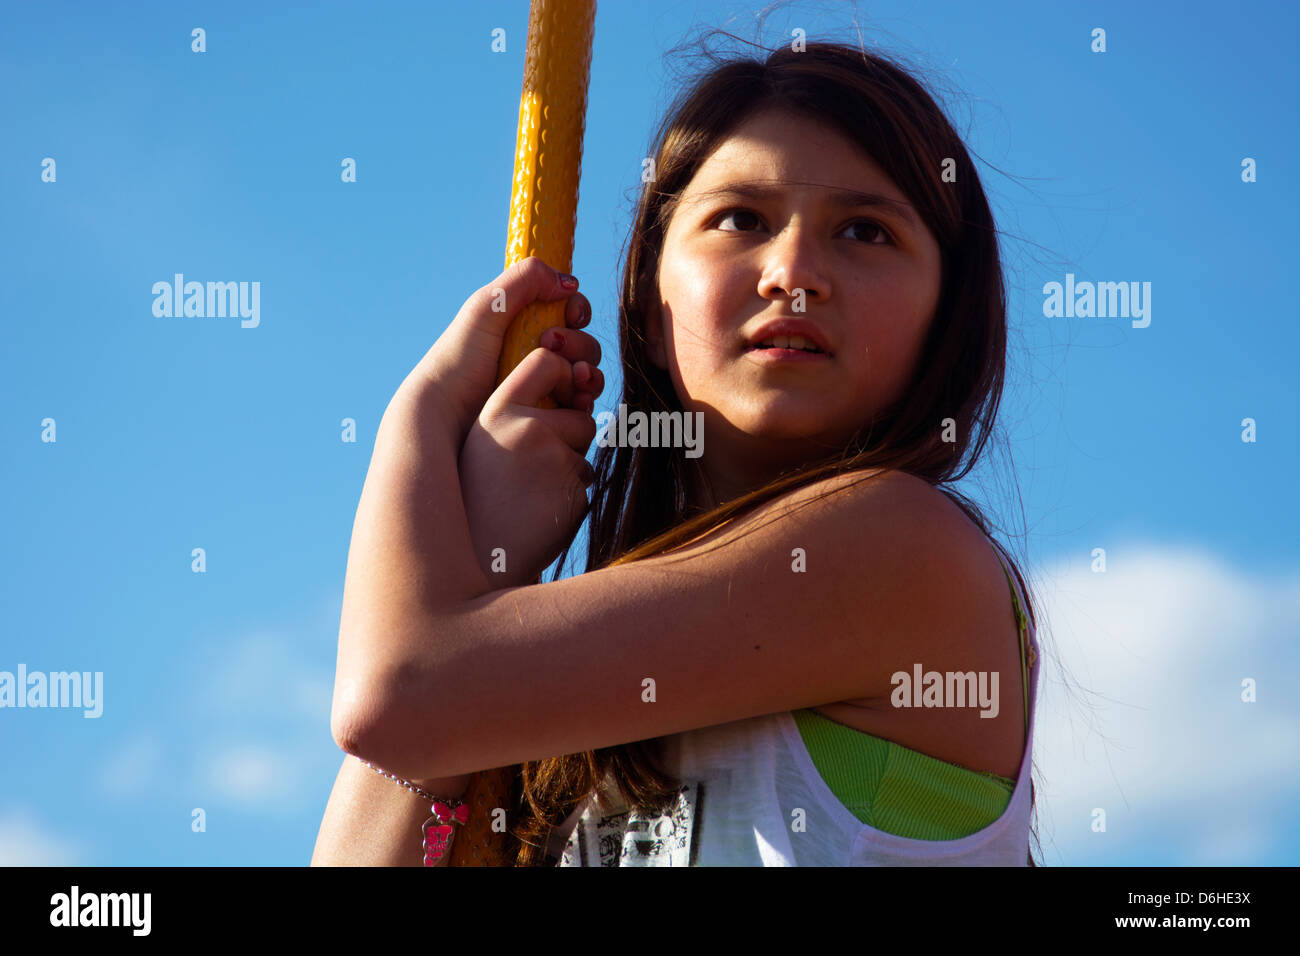 Serious Young Girl On Playground - Stock Image